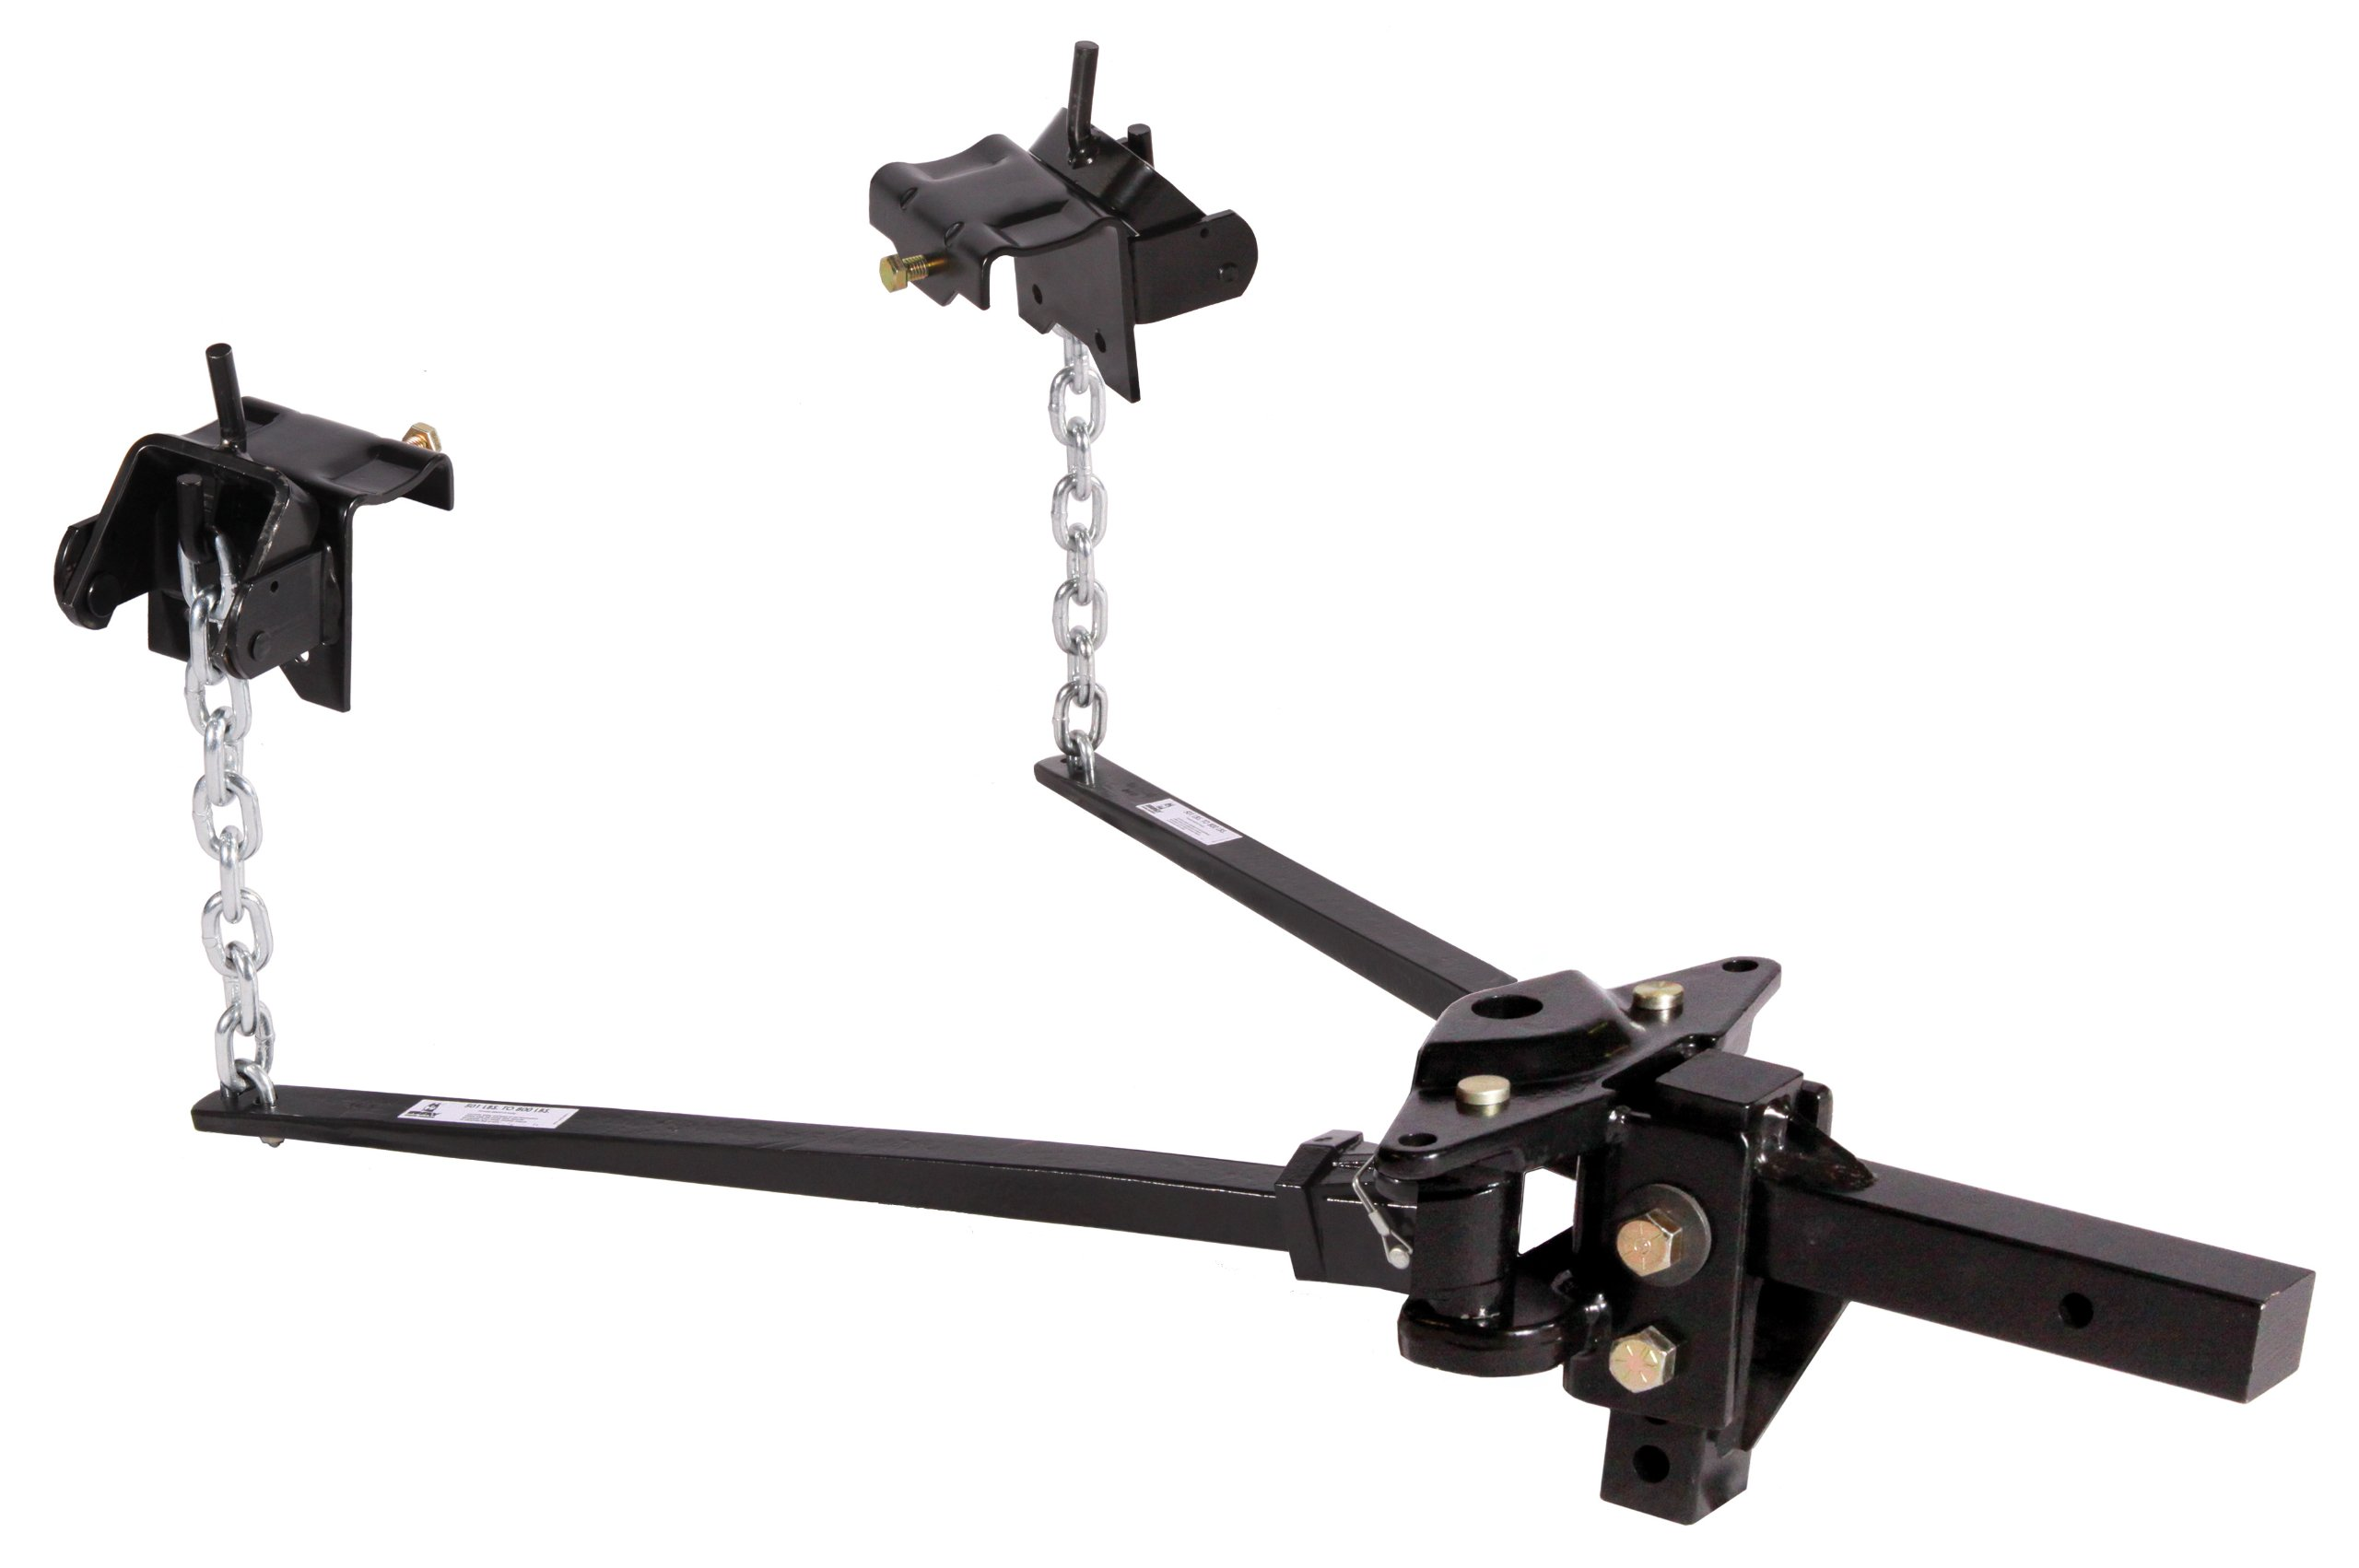 Husky 31335 Pin Trunnion Bar Weight Distribution Hitch - (801 lb. to 1200 lb. Tongue Weight Capacity) by Husky